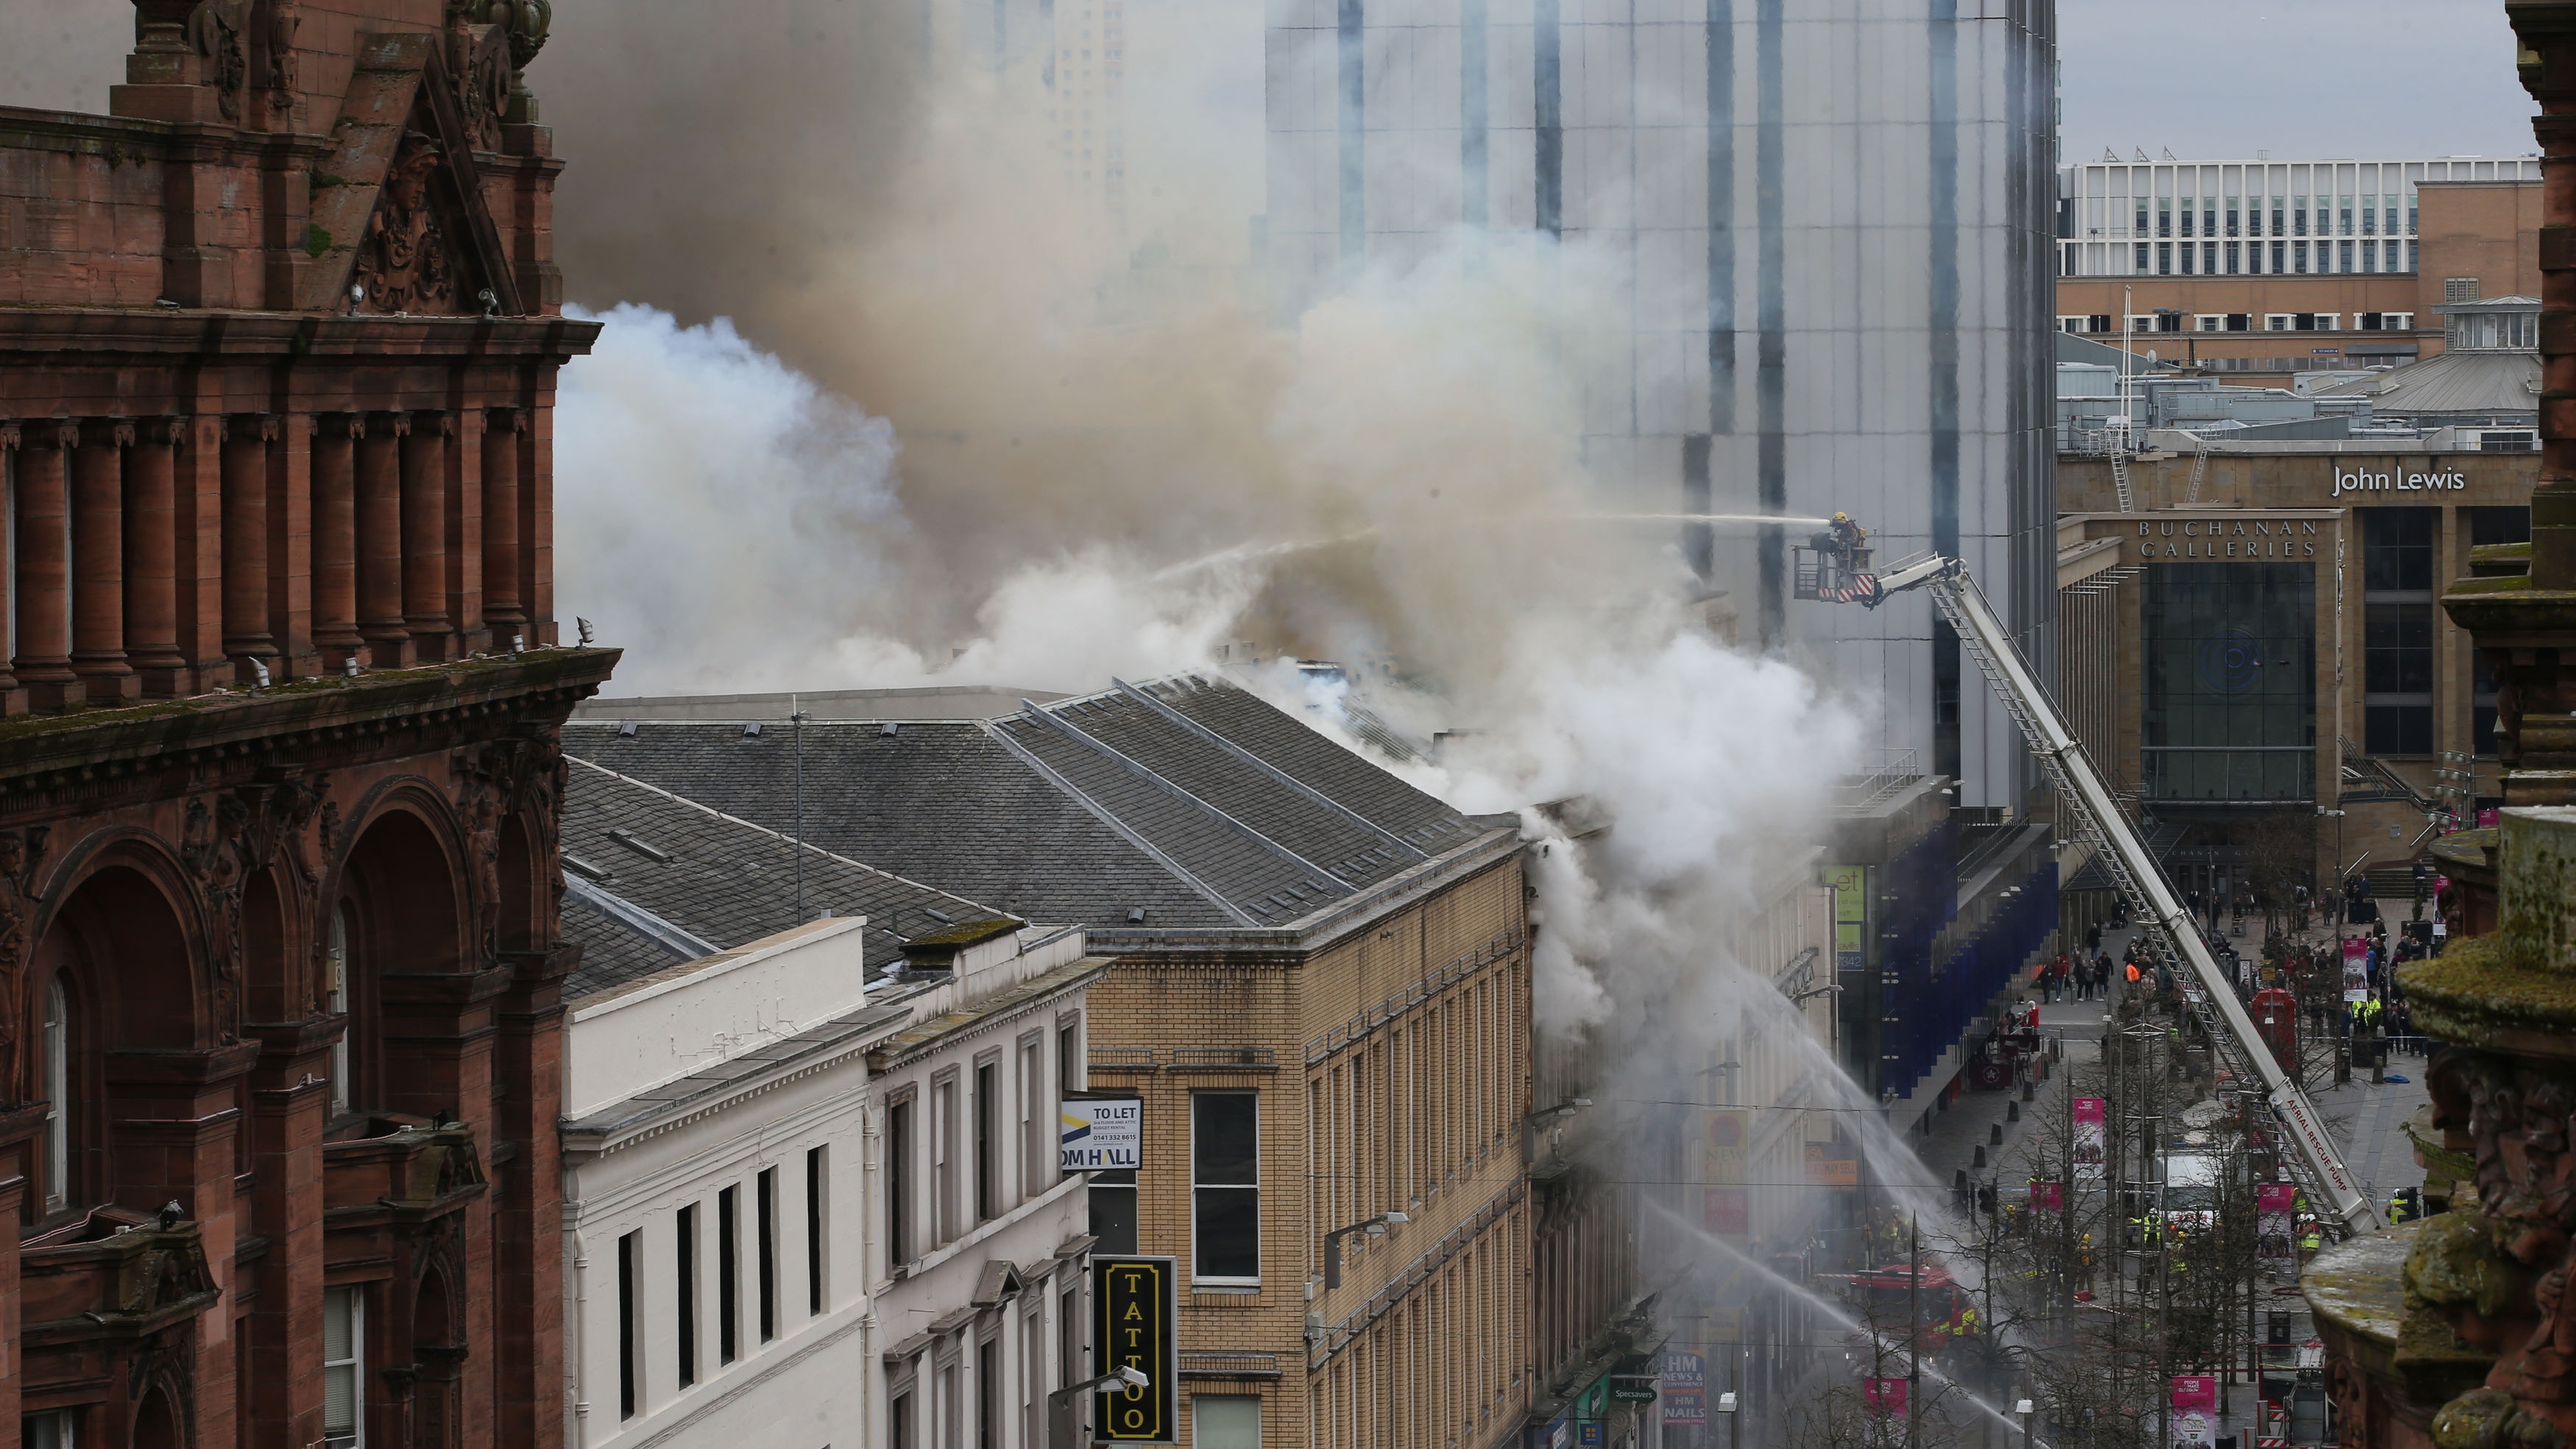 Firefighters remain at scene of Glasgow nightclub blaze